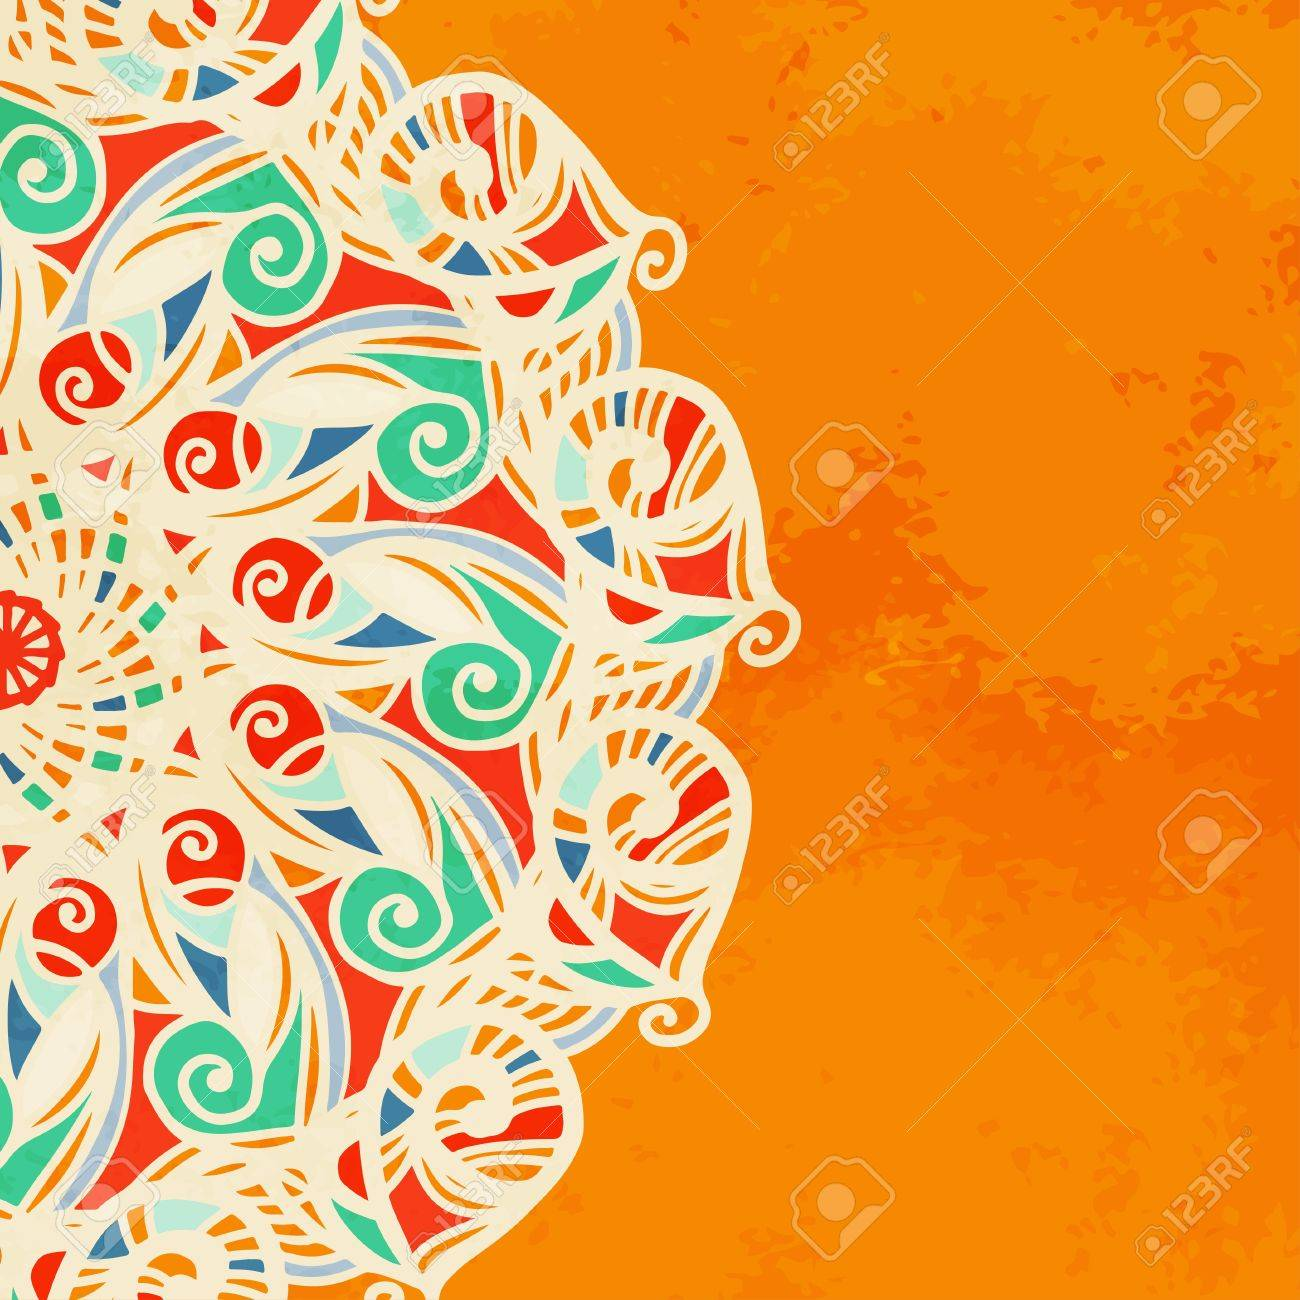 Vintage invitation decoration on orange background with lace ornament Stock Vector - 18791566